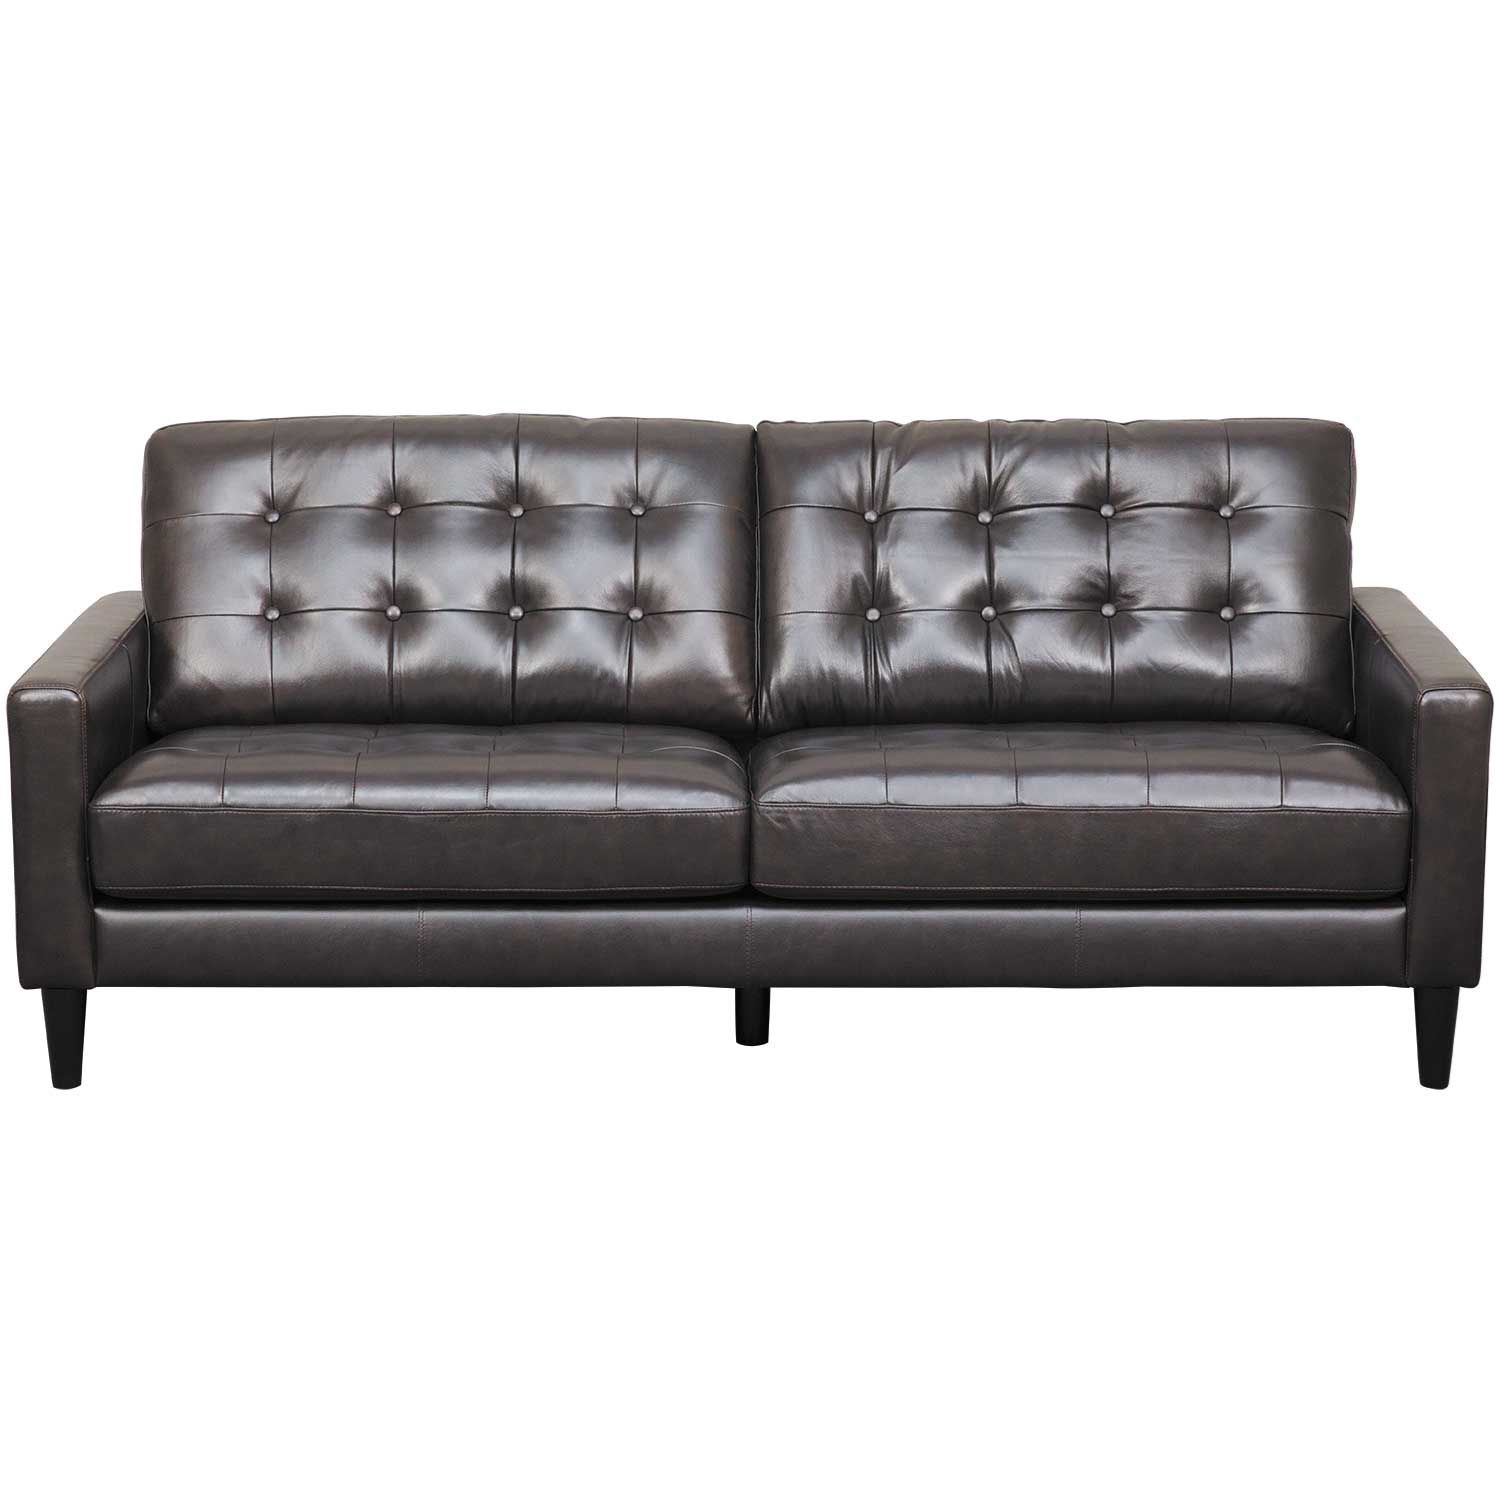 Dark Brown Couch Ashton Dark Brown Leather Sofa As 5957br Dbrn 3